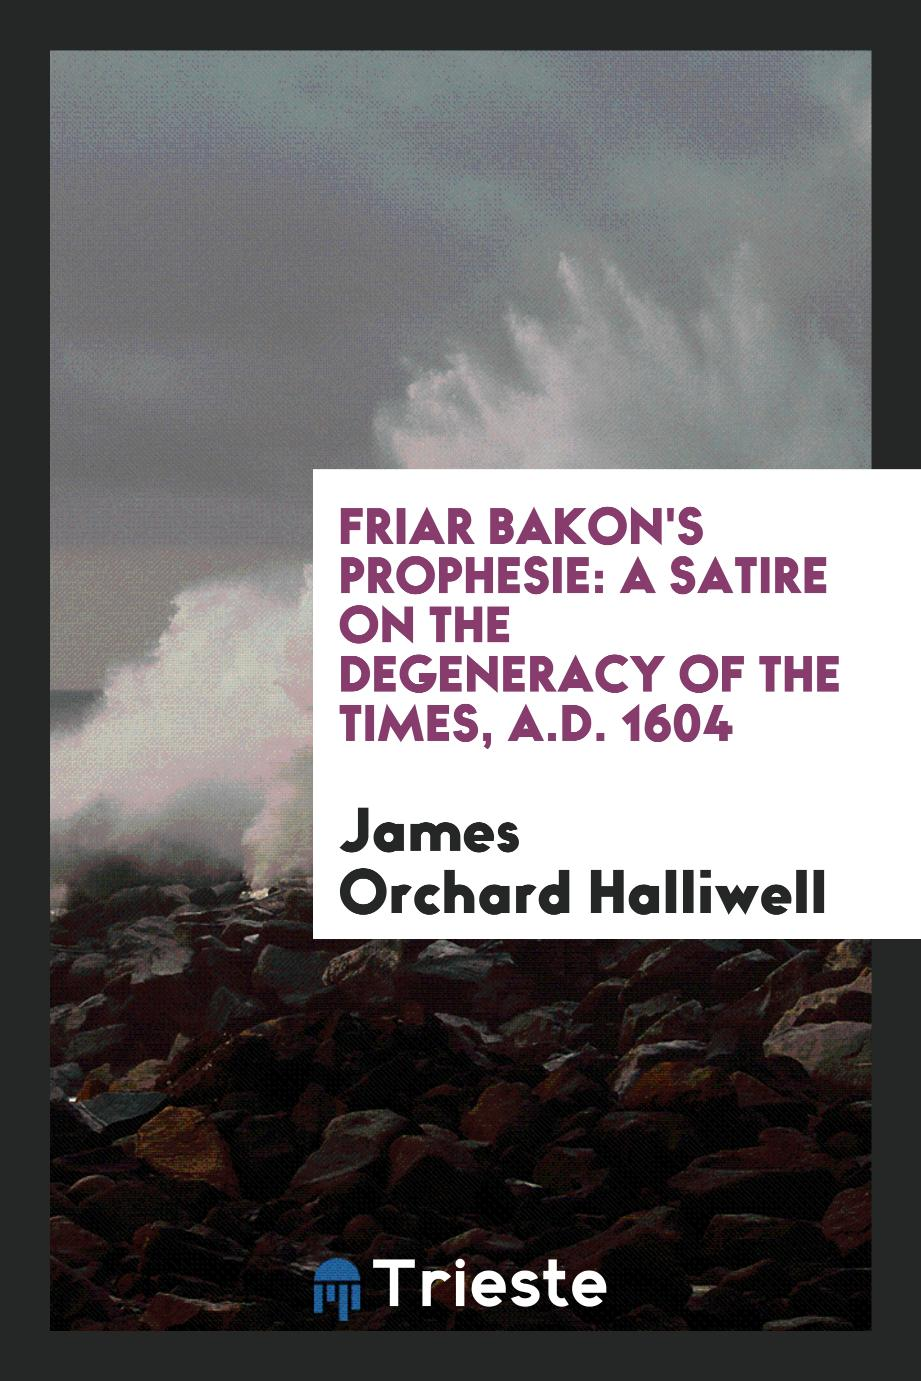 Friar Bakon's Prophesie: A Satire on the degeneracy of the times, A.D. 1604